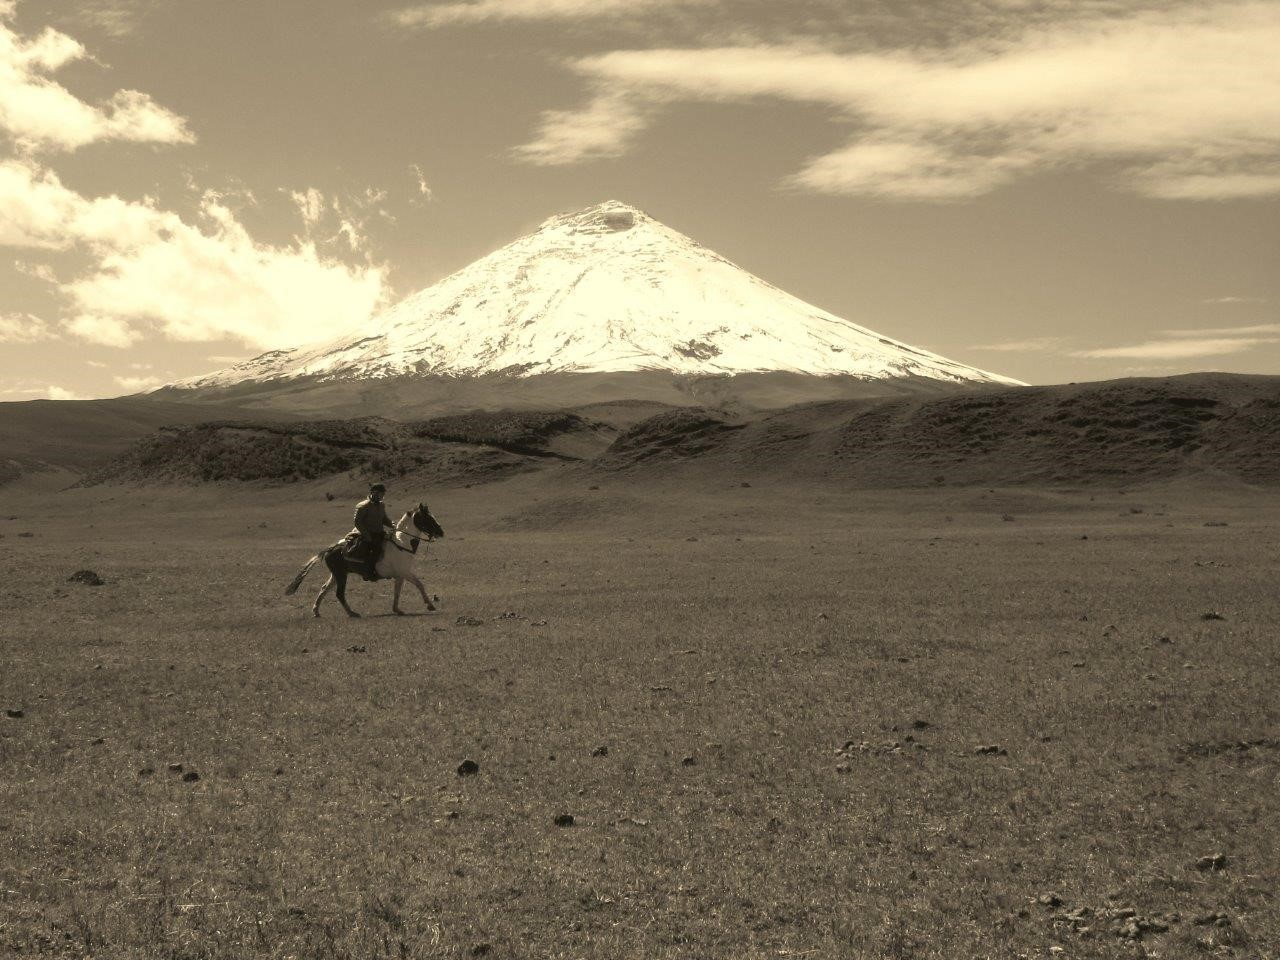 RIDE ANDES horse trek ecuador south america cotopaxi